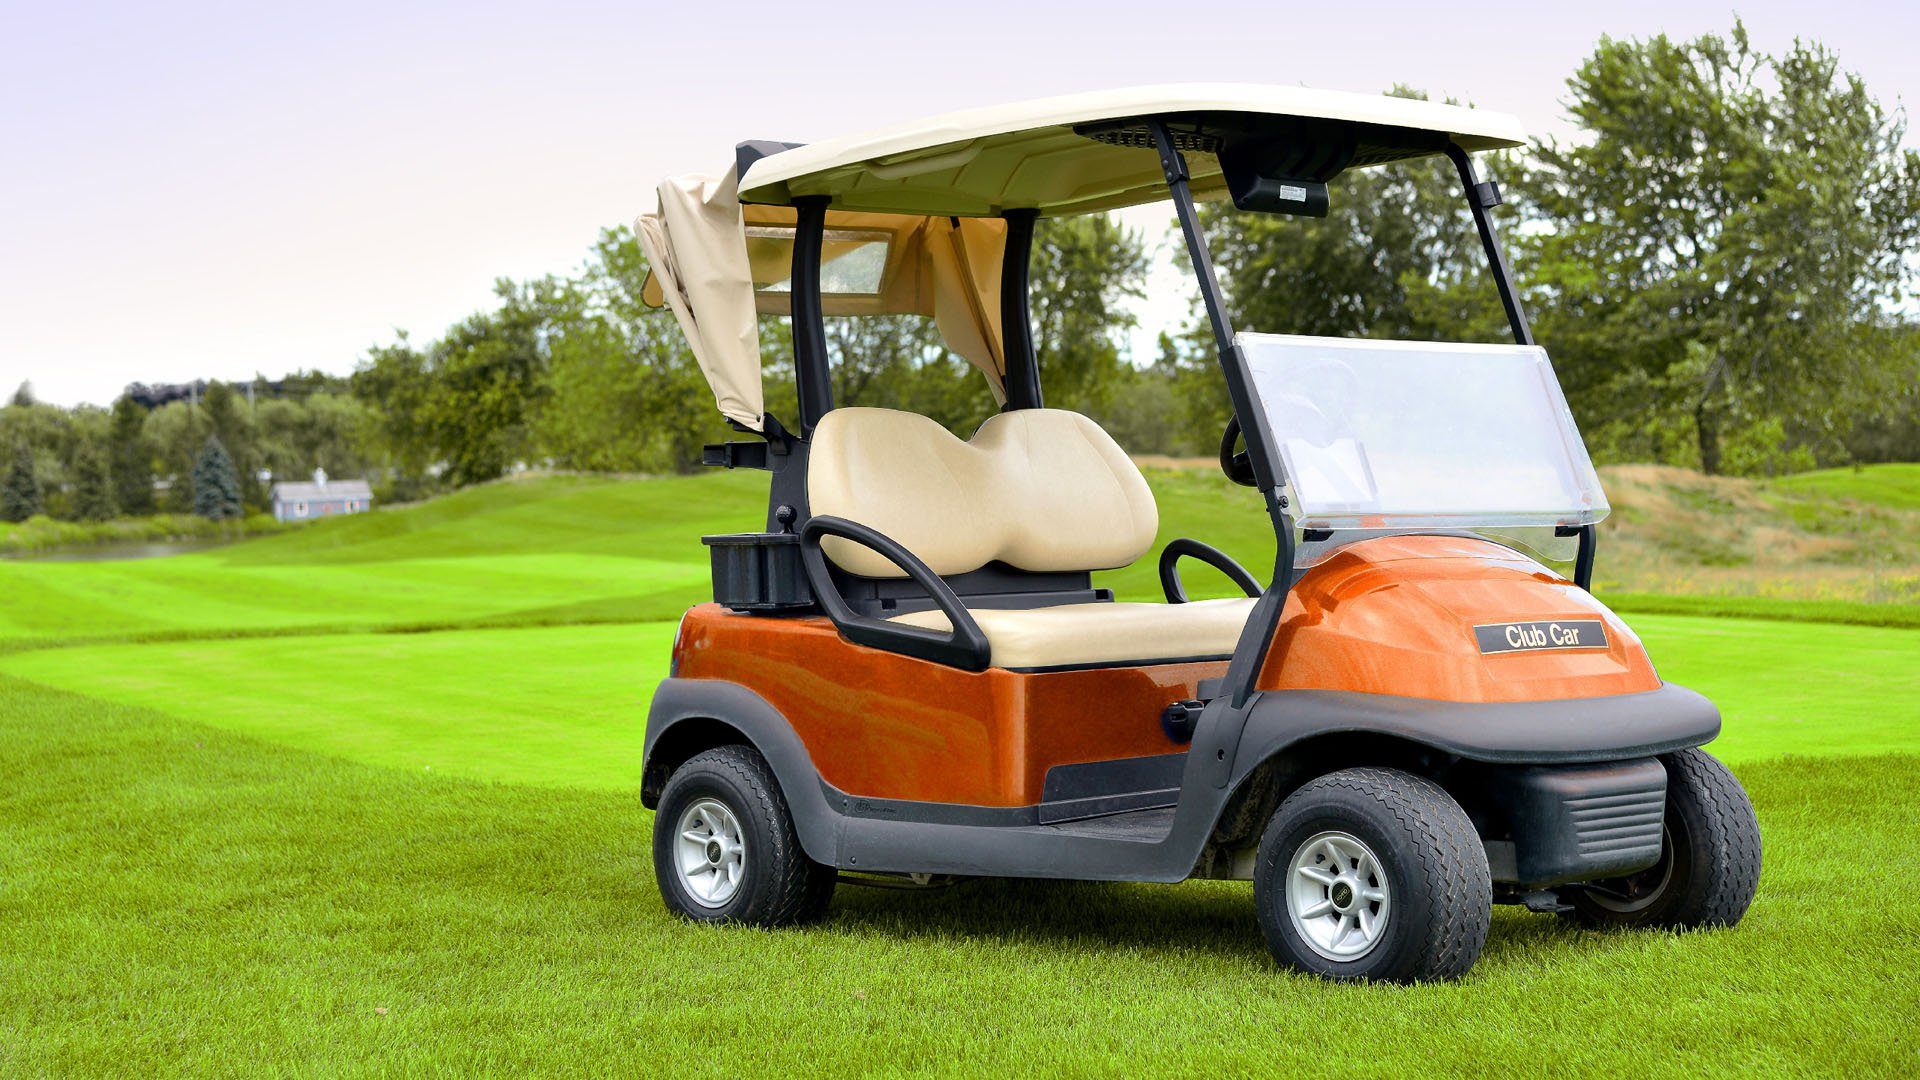 angus glen golf course golfcart